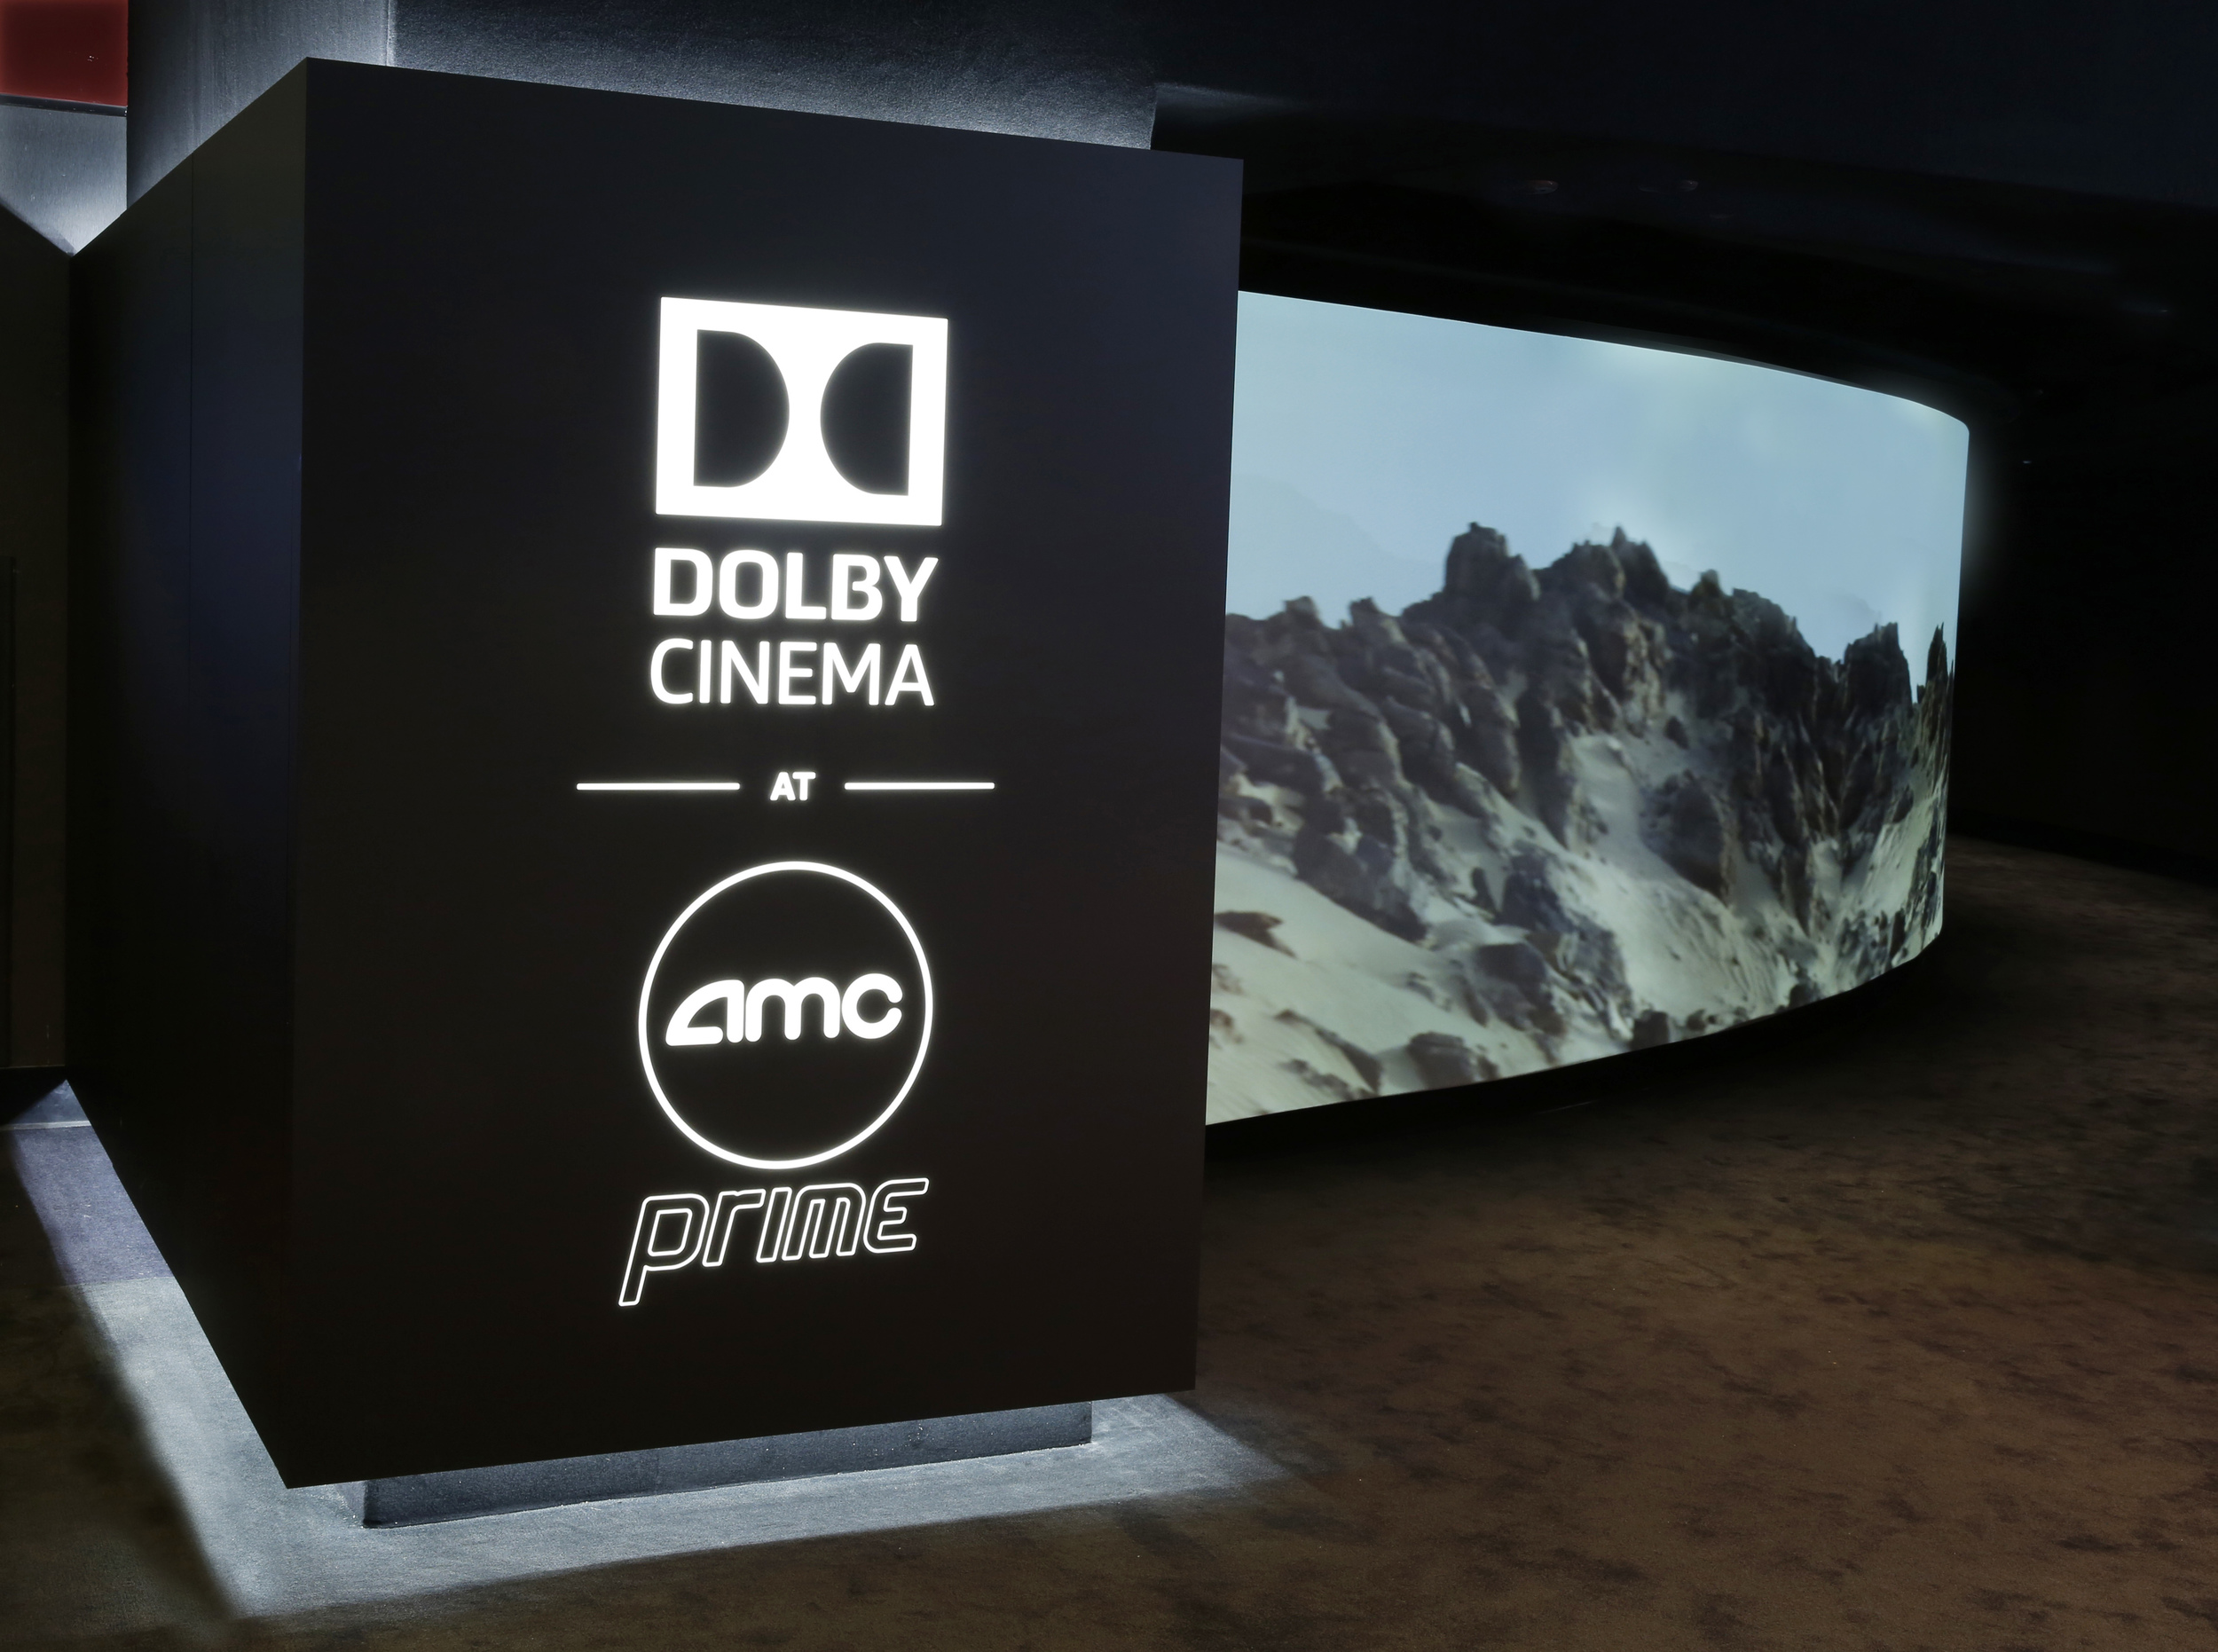 Dolby Cinema at AMC Prime Entrance. (The Martian) Photo courtesy of Dolby Cinema.